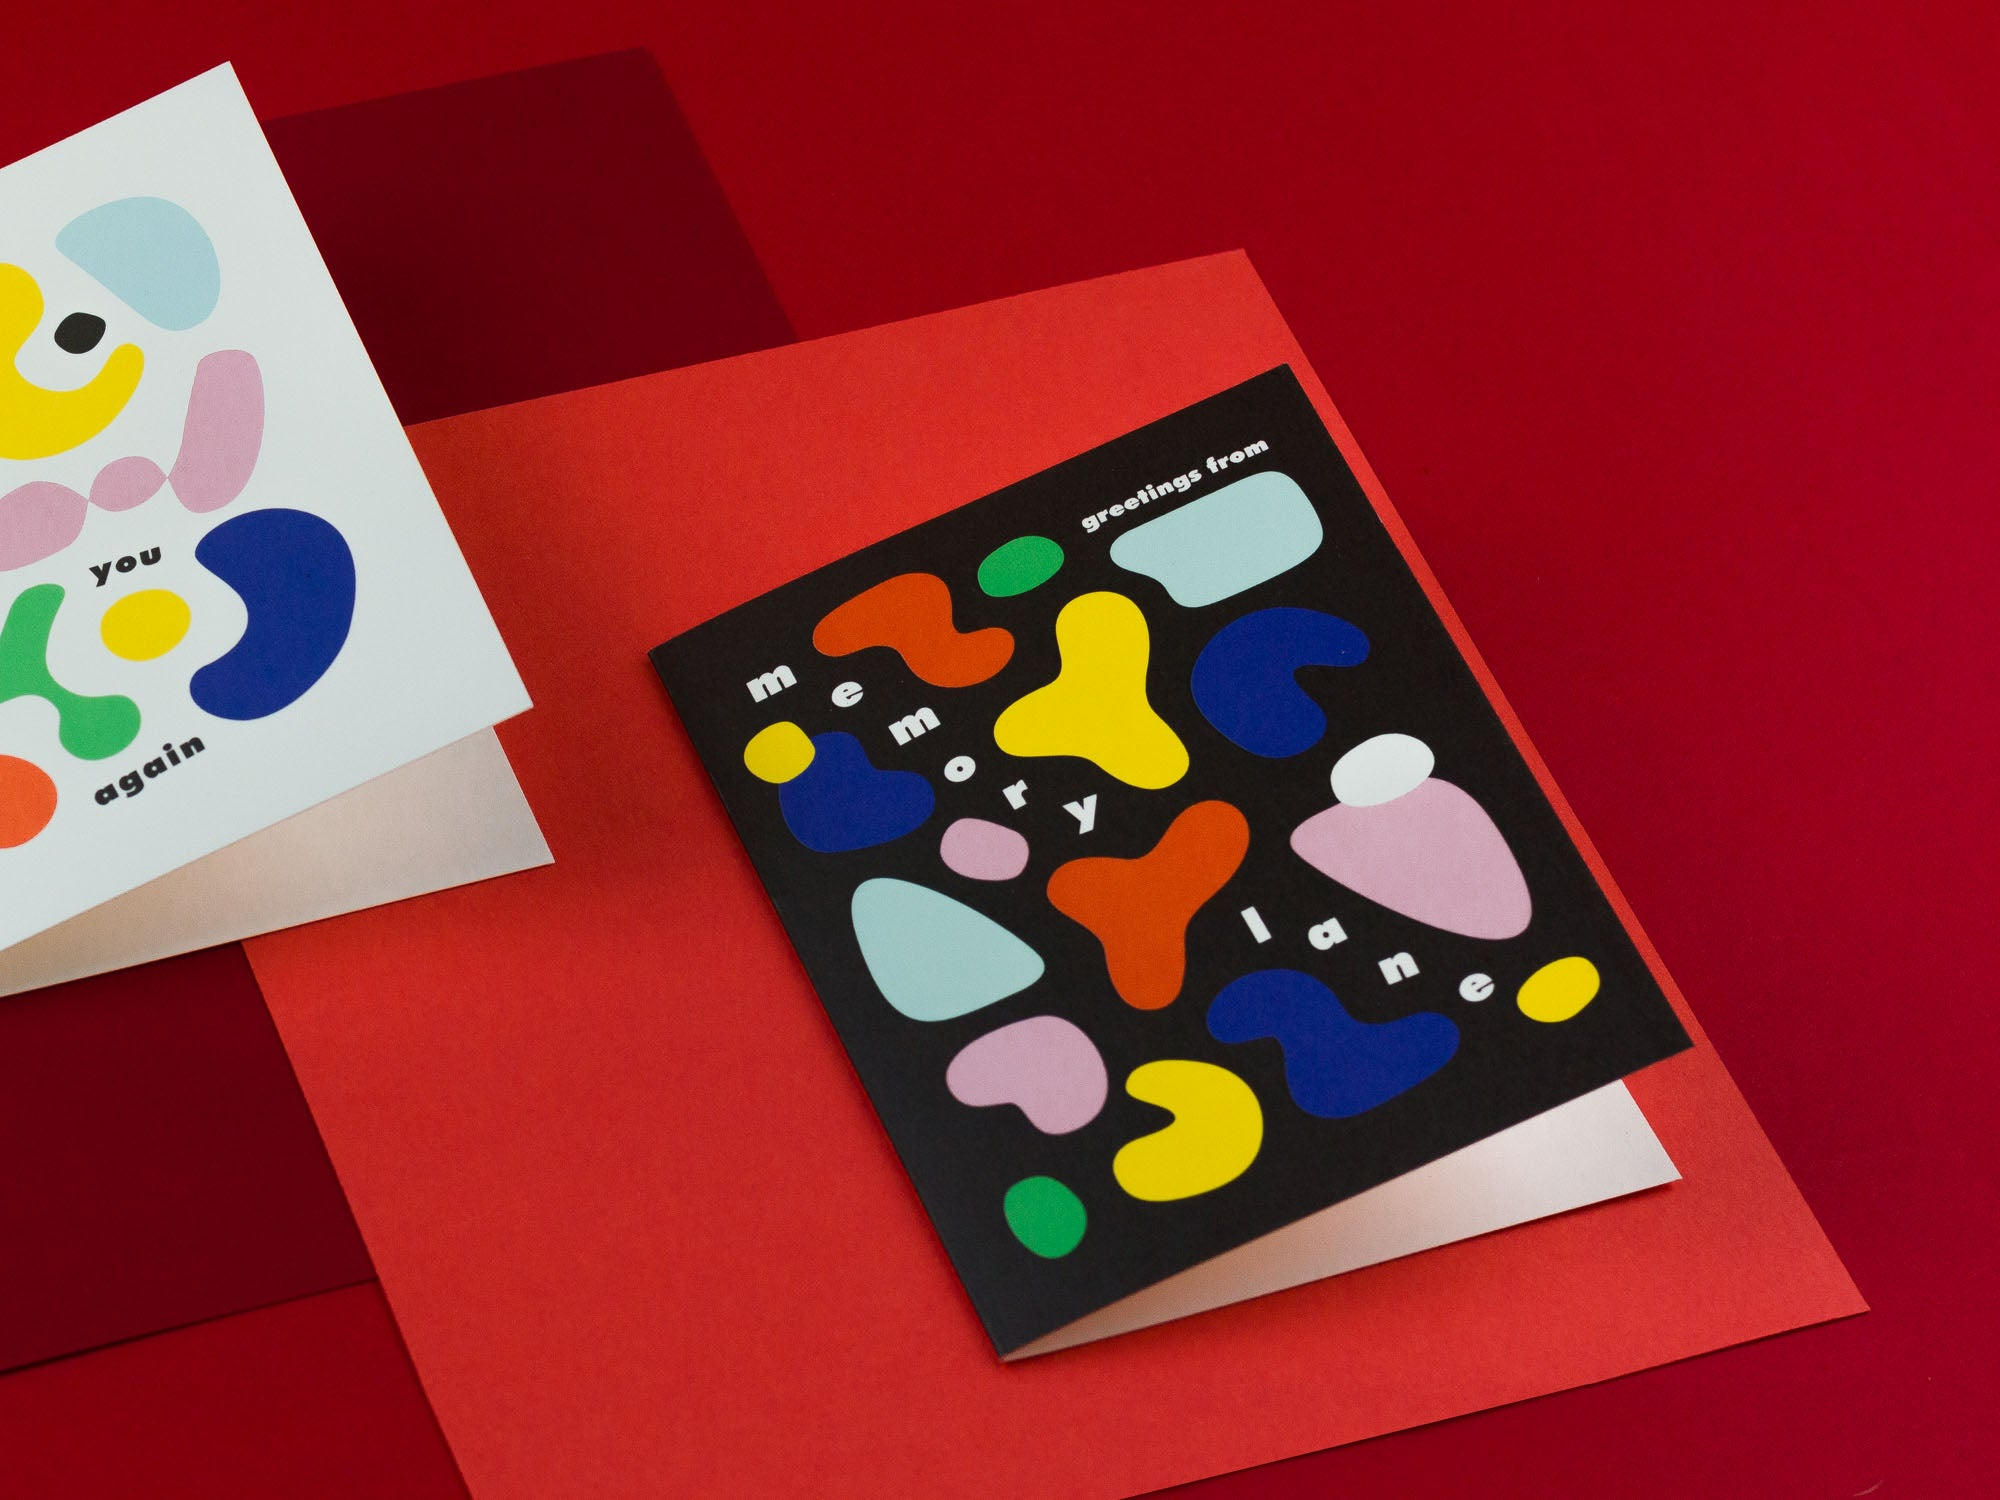 Greetings from Memory Lane thinking of you card with colorful abstract shapes by My Darlin' that reads Greetings From Memory Lane by @mydarlin_bk